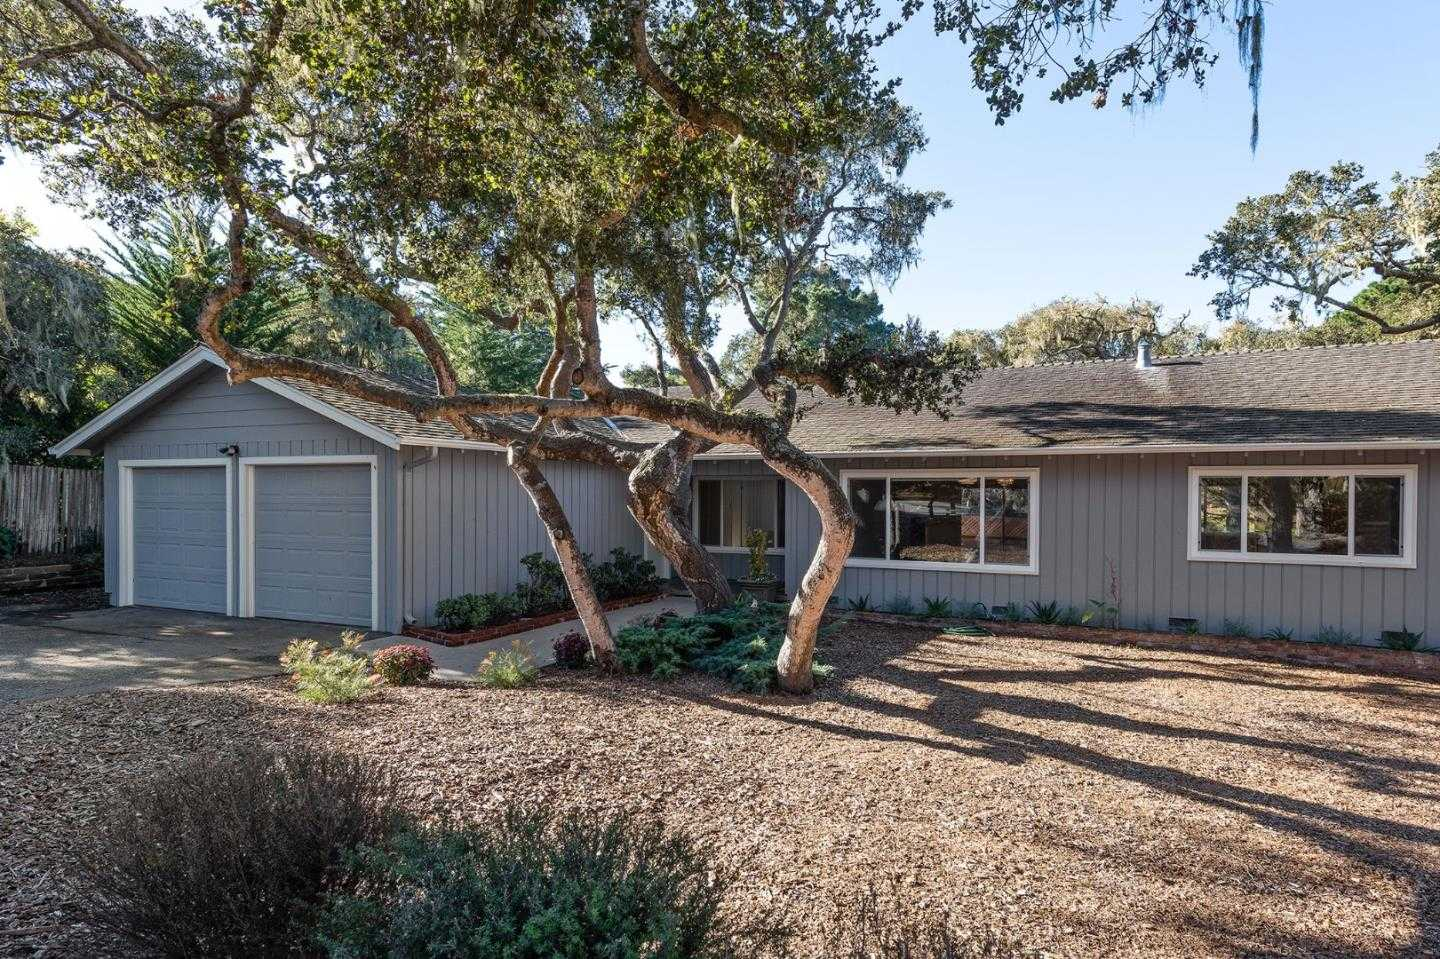 $1,495,000 - 4Br/3Ba -  for Sale in Pebble Beach